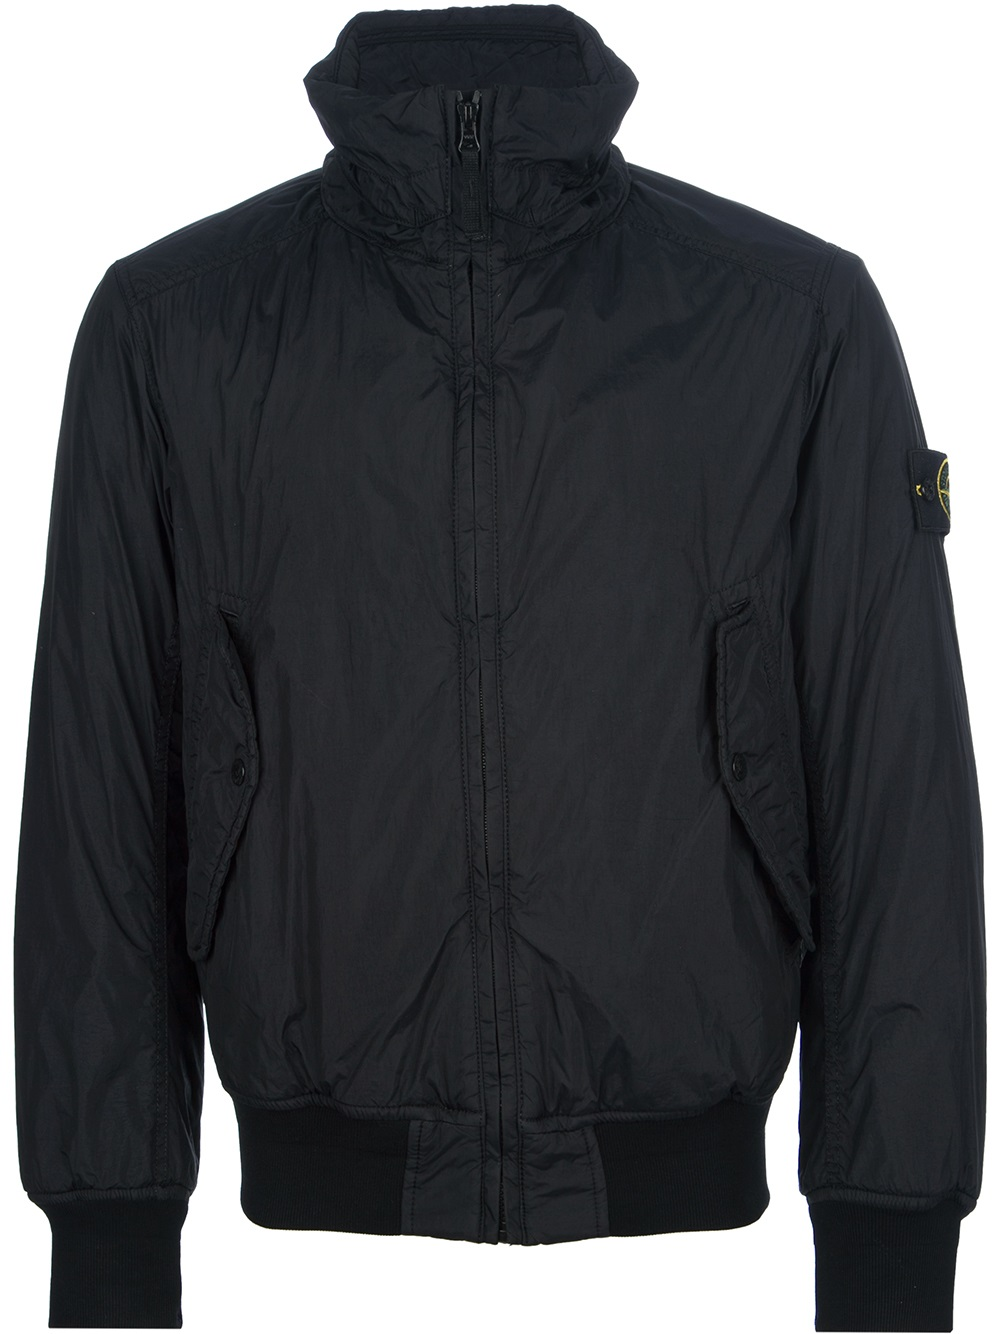 Stone island Bomber Jacket in Black for Men | Lyst